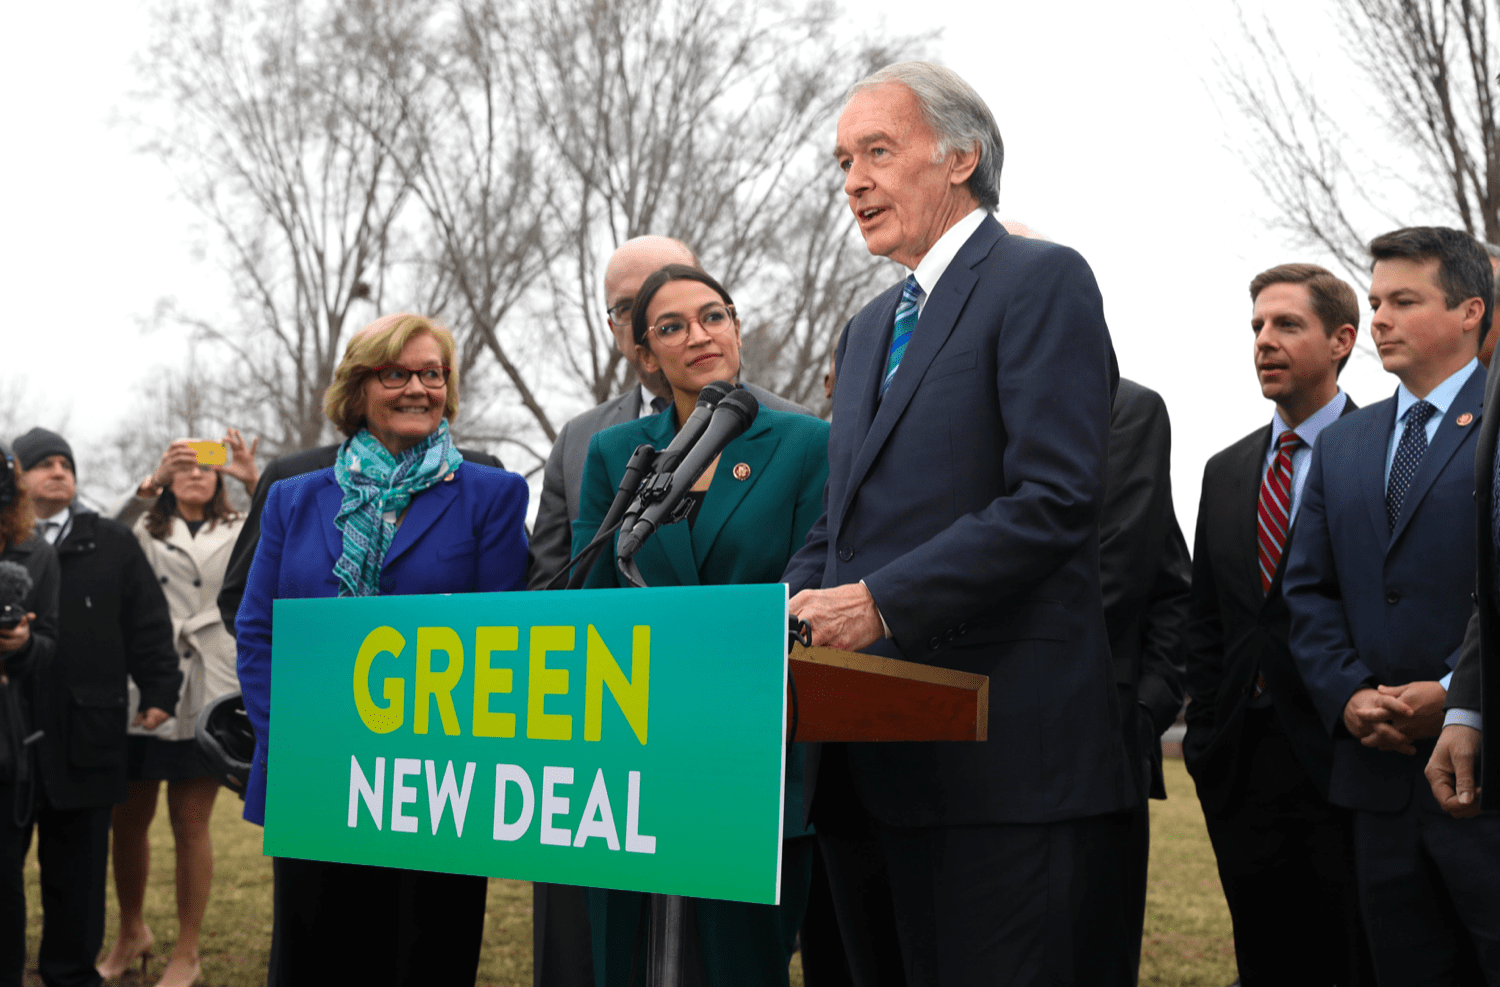 """ed markey stands at a podium that says """"green new deal"""" flanked by people to his right, including alexadria ocasio-cortez"""